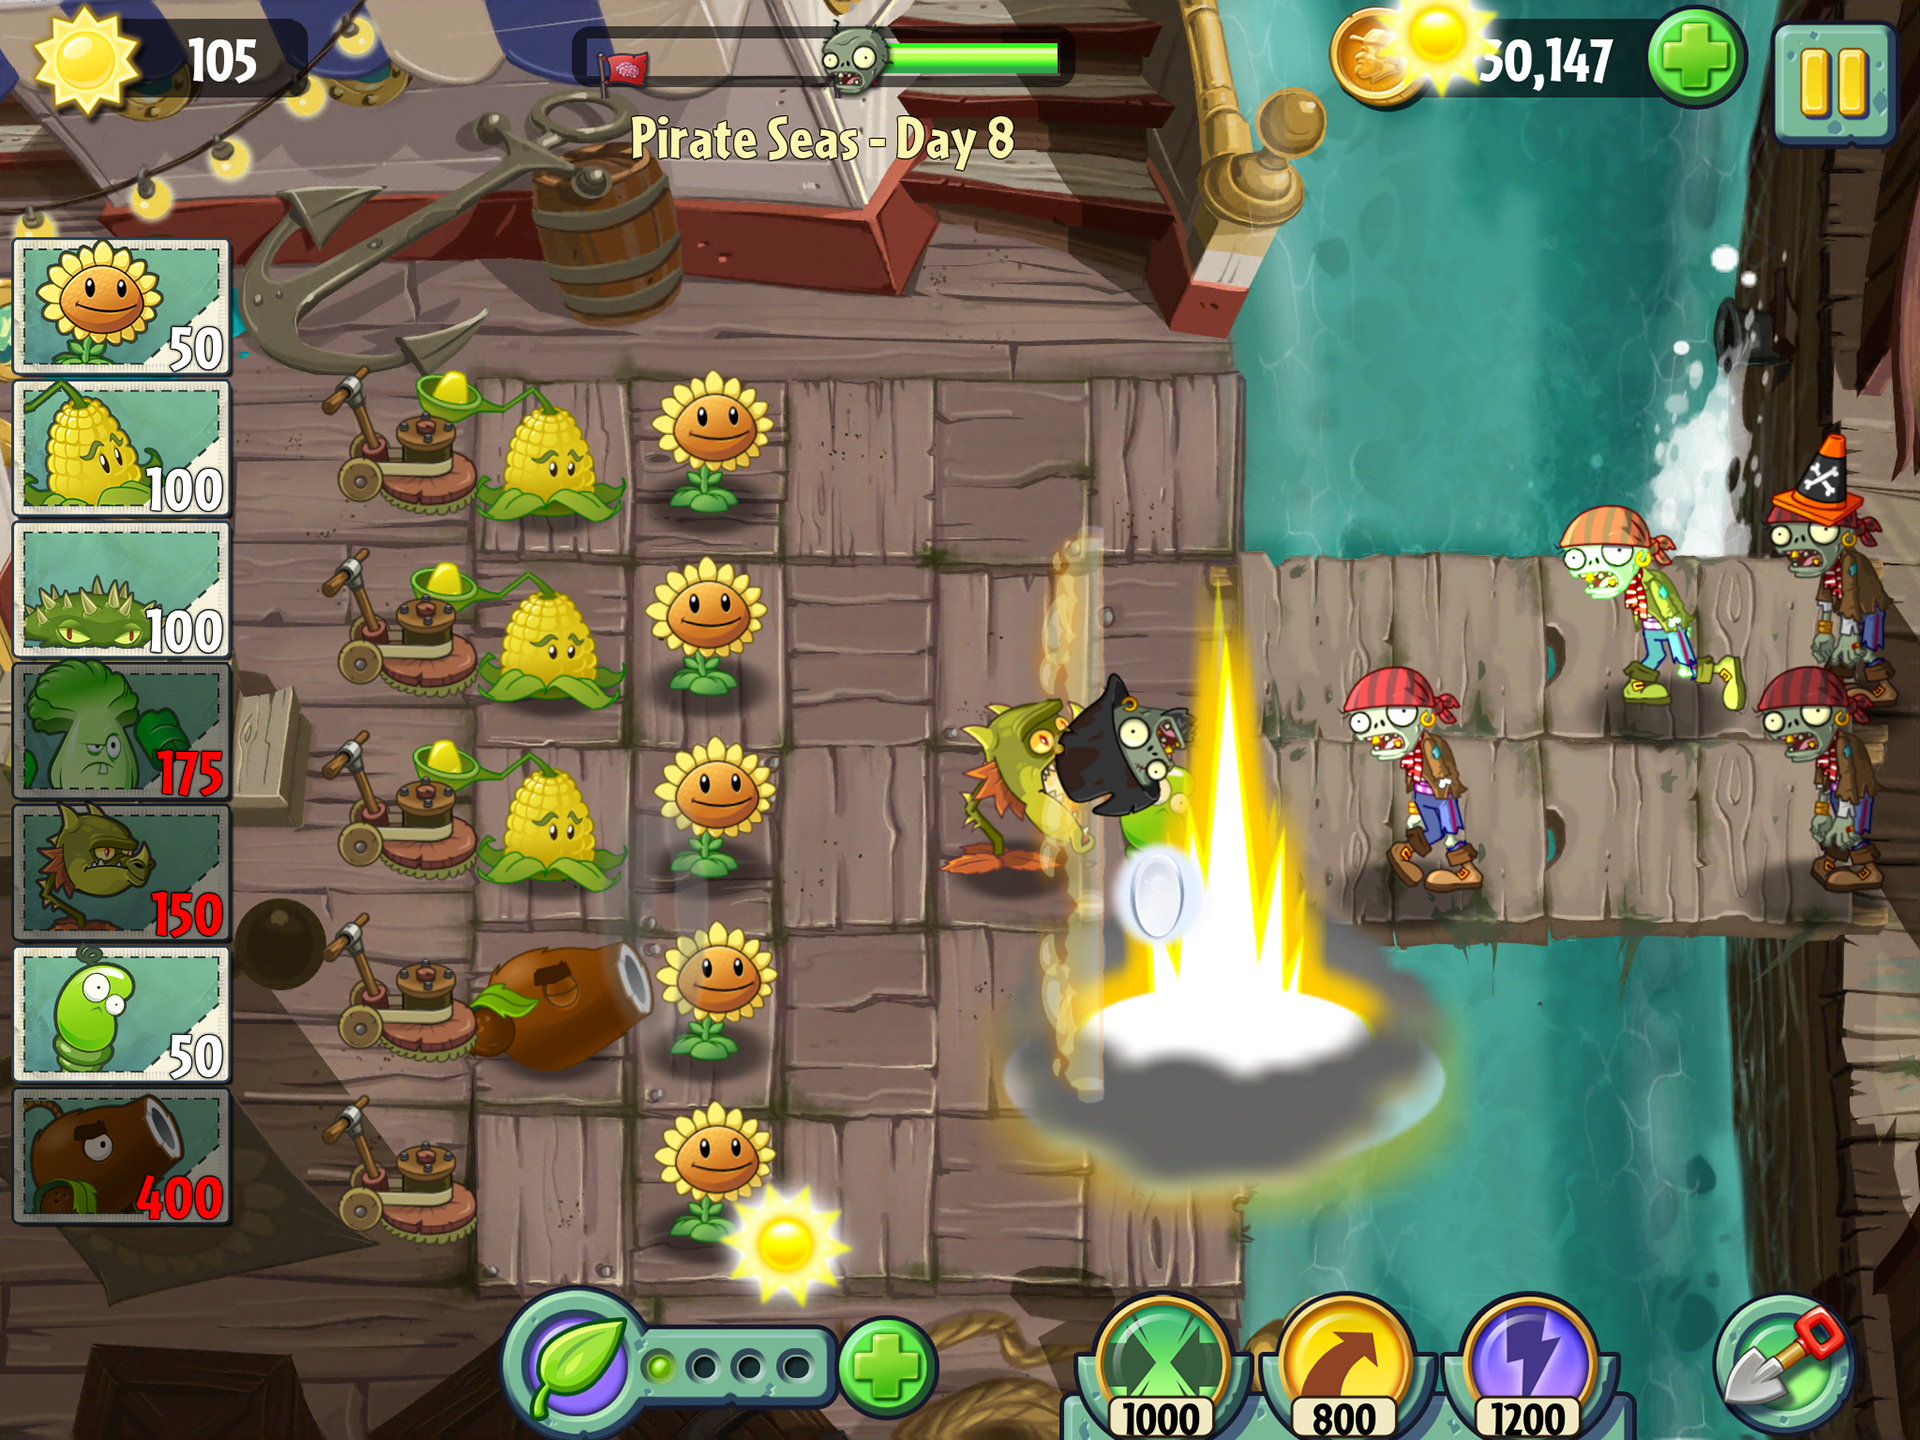 Plants Vs. Zombies 2 Is Free-To-Play That's Better Without Paying